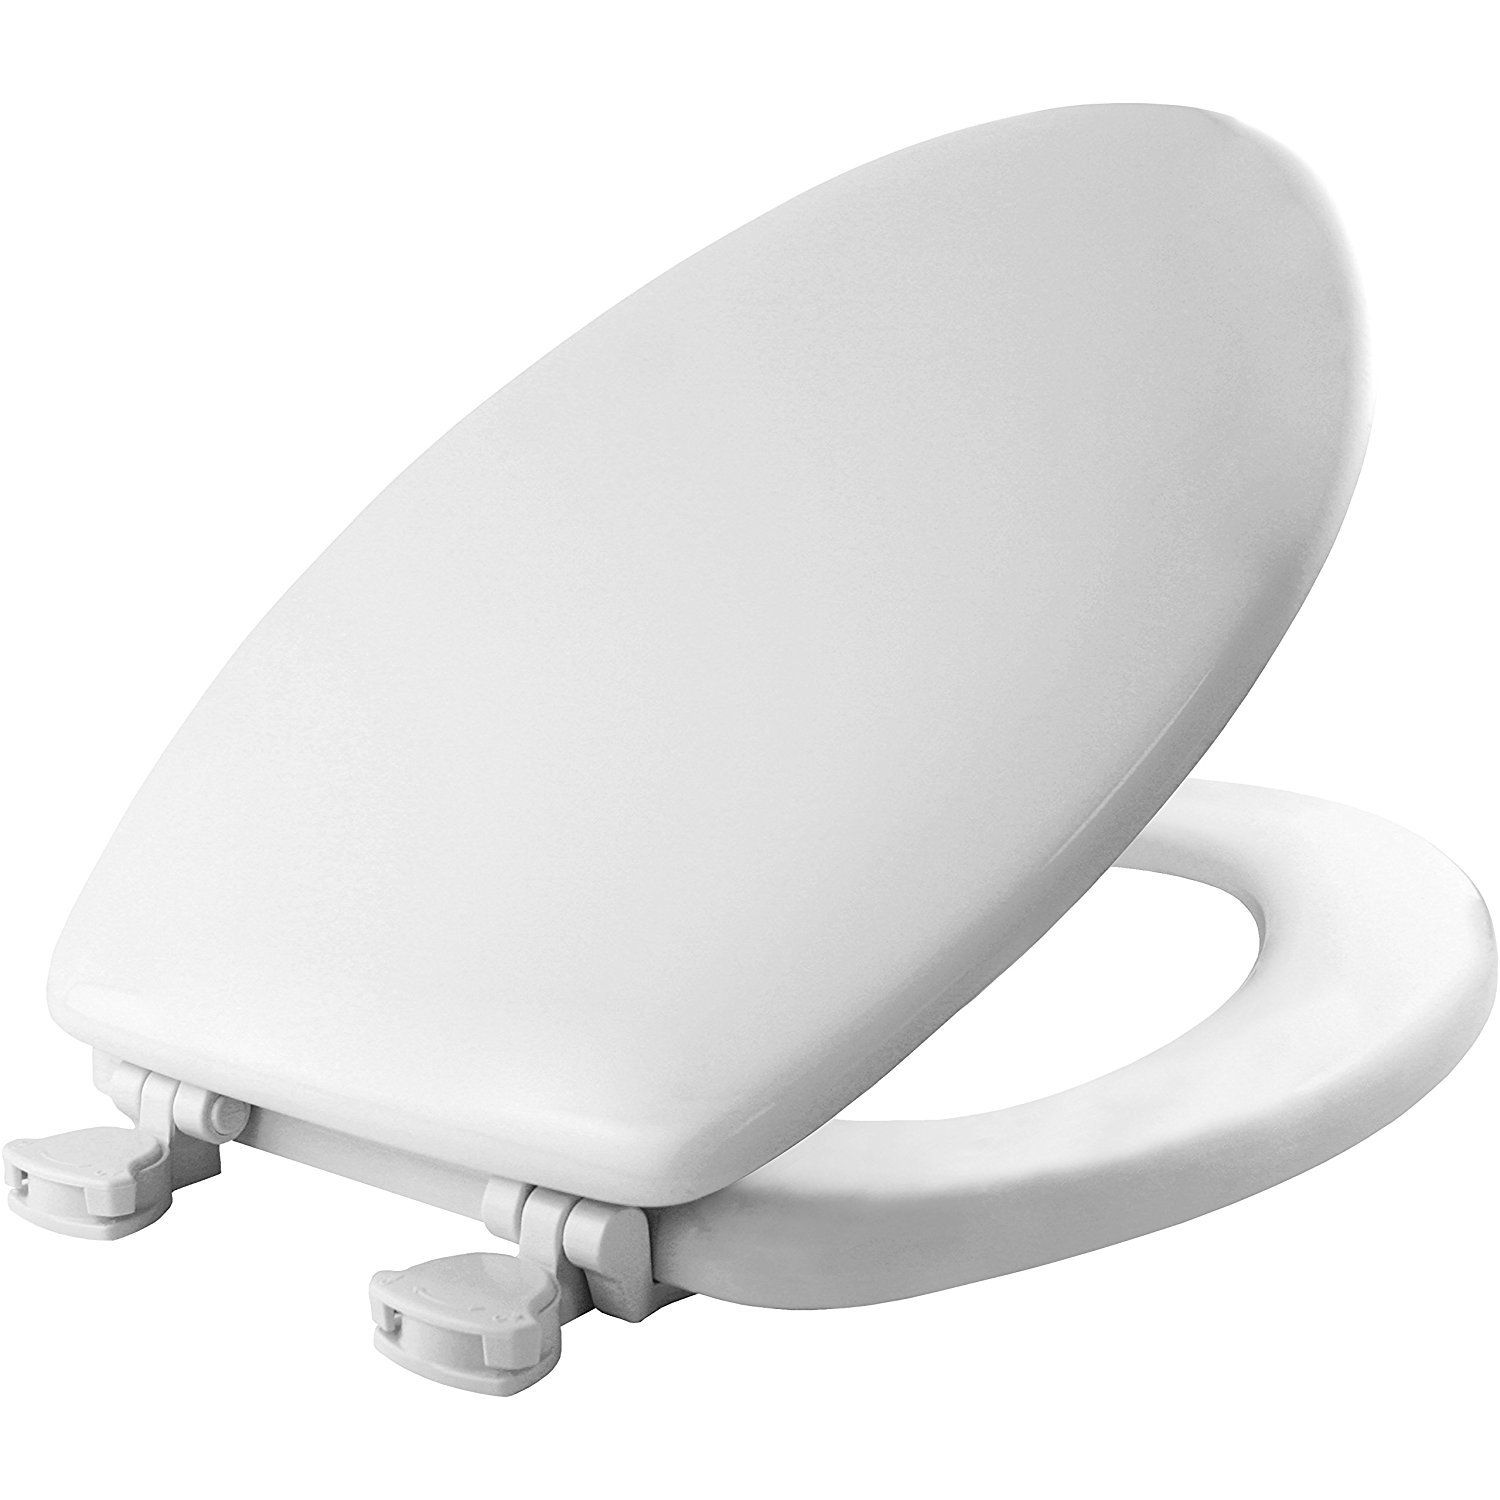 Mayfair 1844ec 000 Toilet Seat Easily Remove Elongated Durable